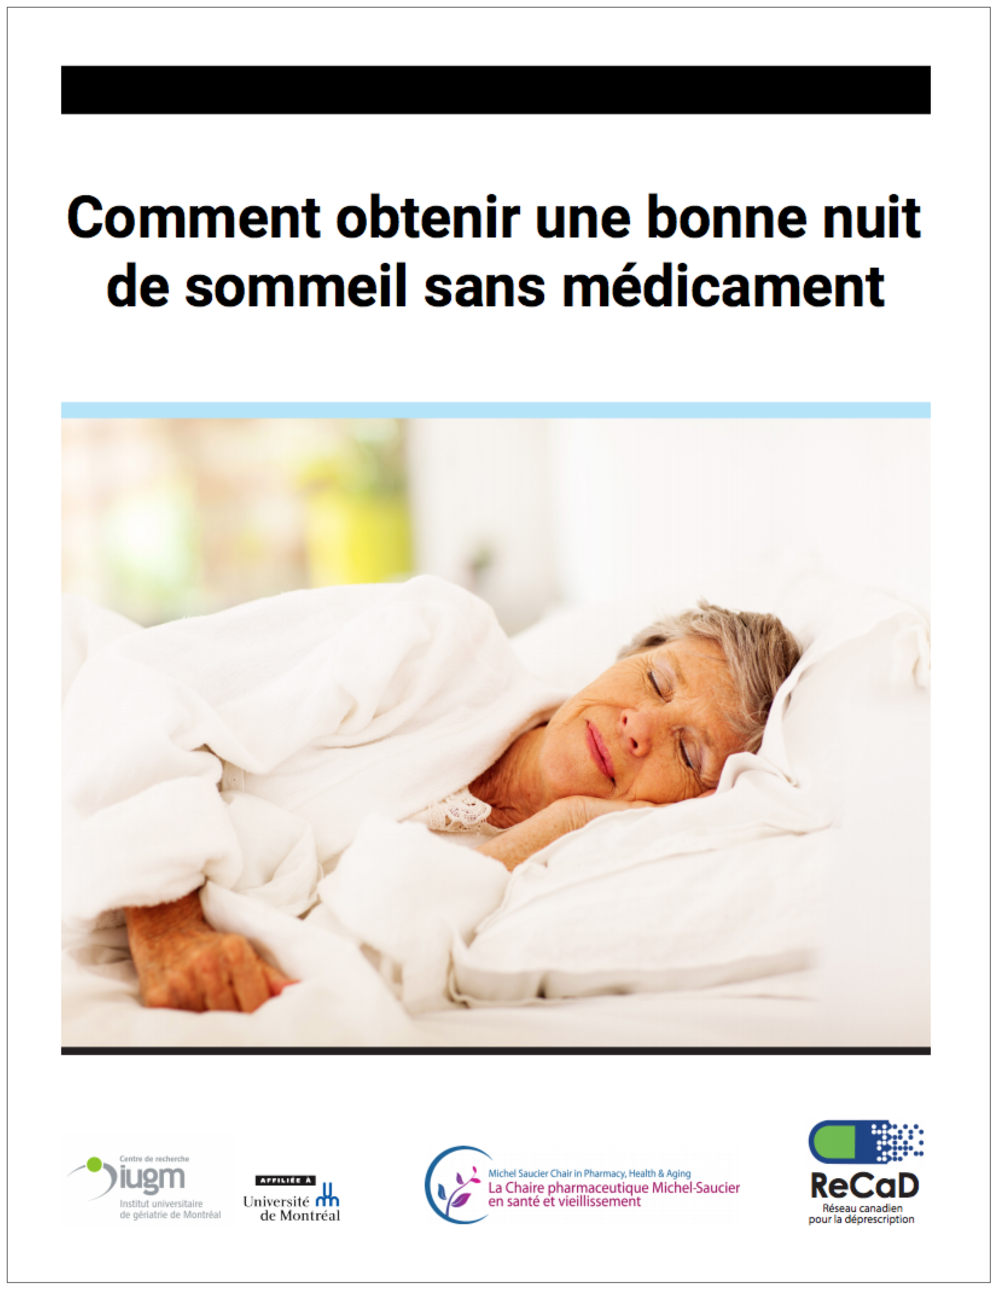 Sleep_FR_withborder@3x.png